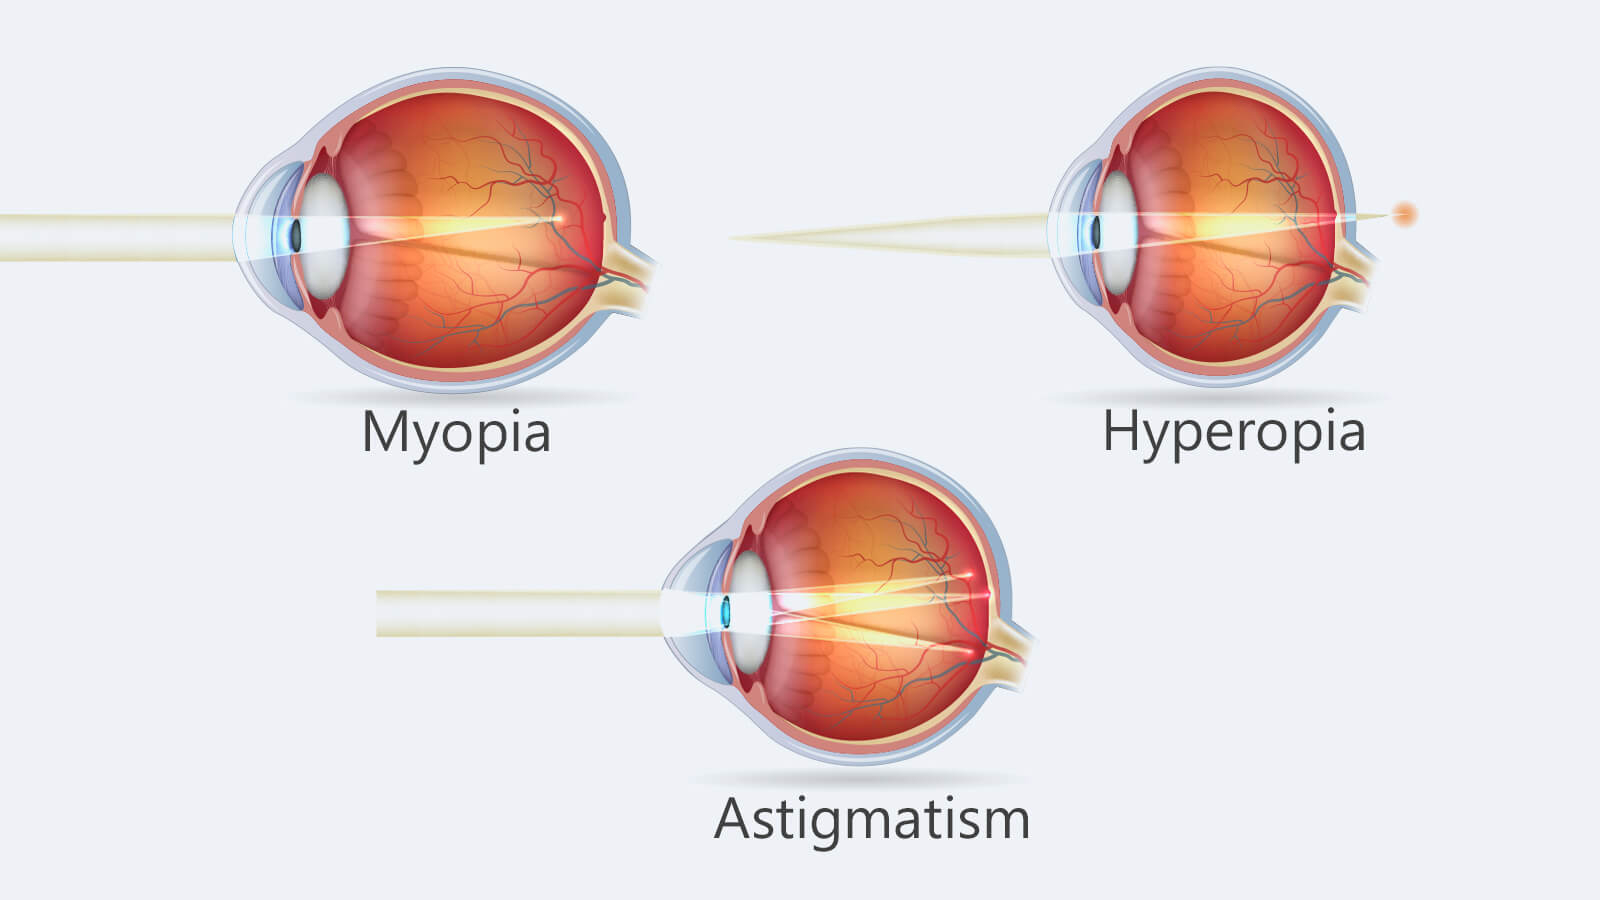 Myopia hyperopia and astigmatism explained